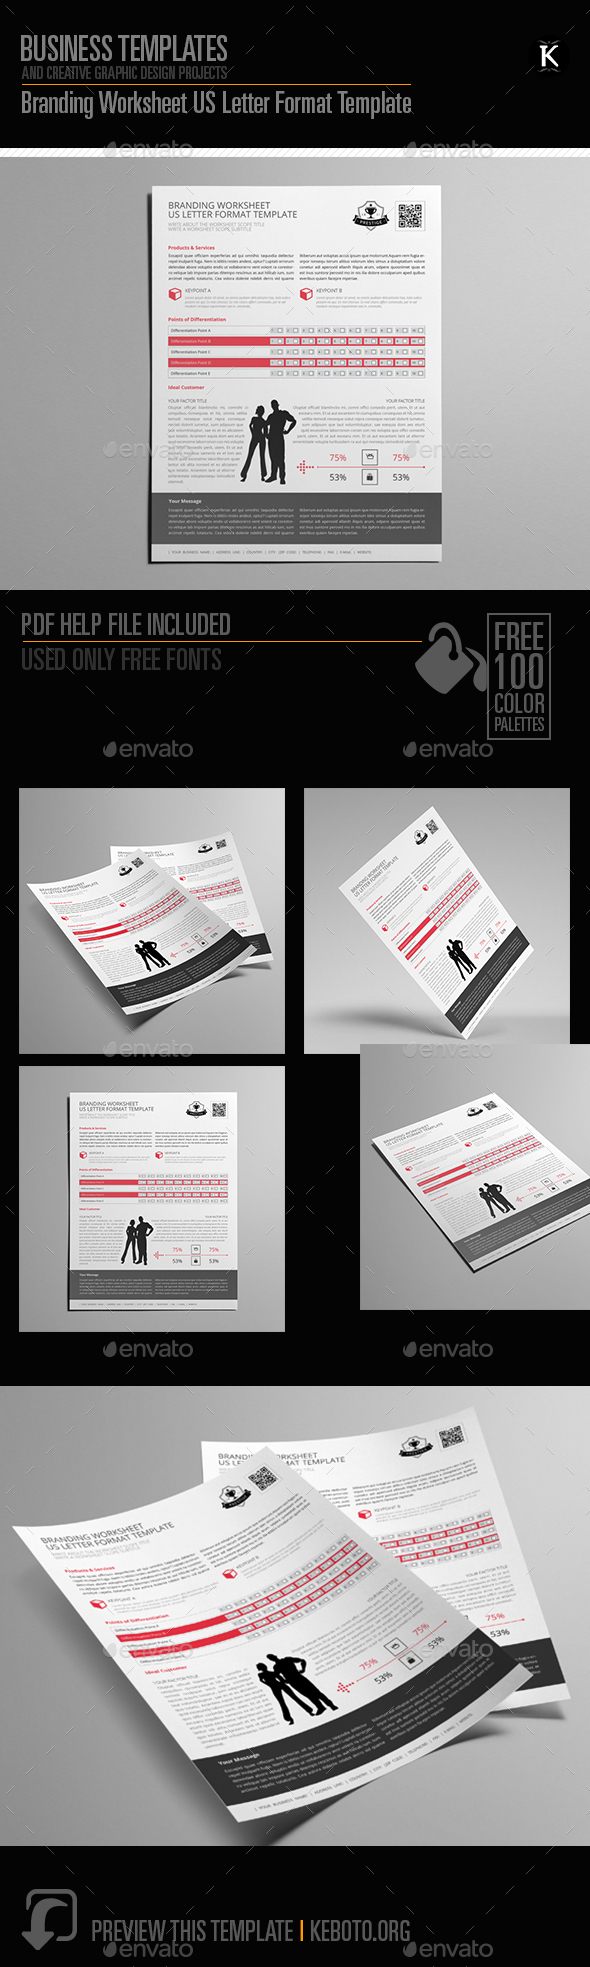 GraphicRiver Branding Worksheet US Letter Format Template 20659569